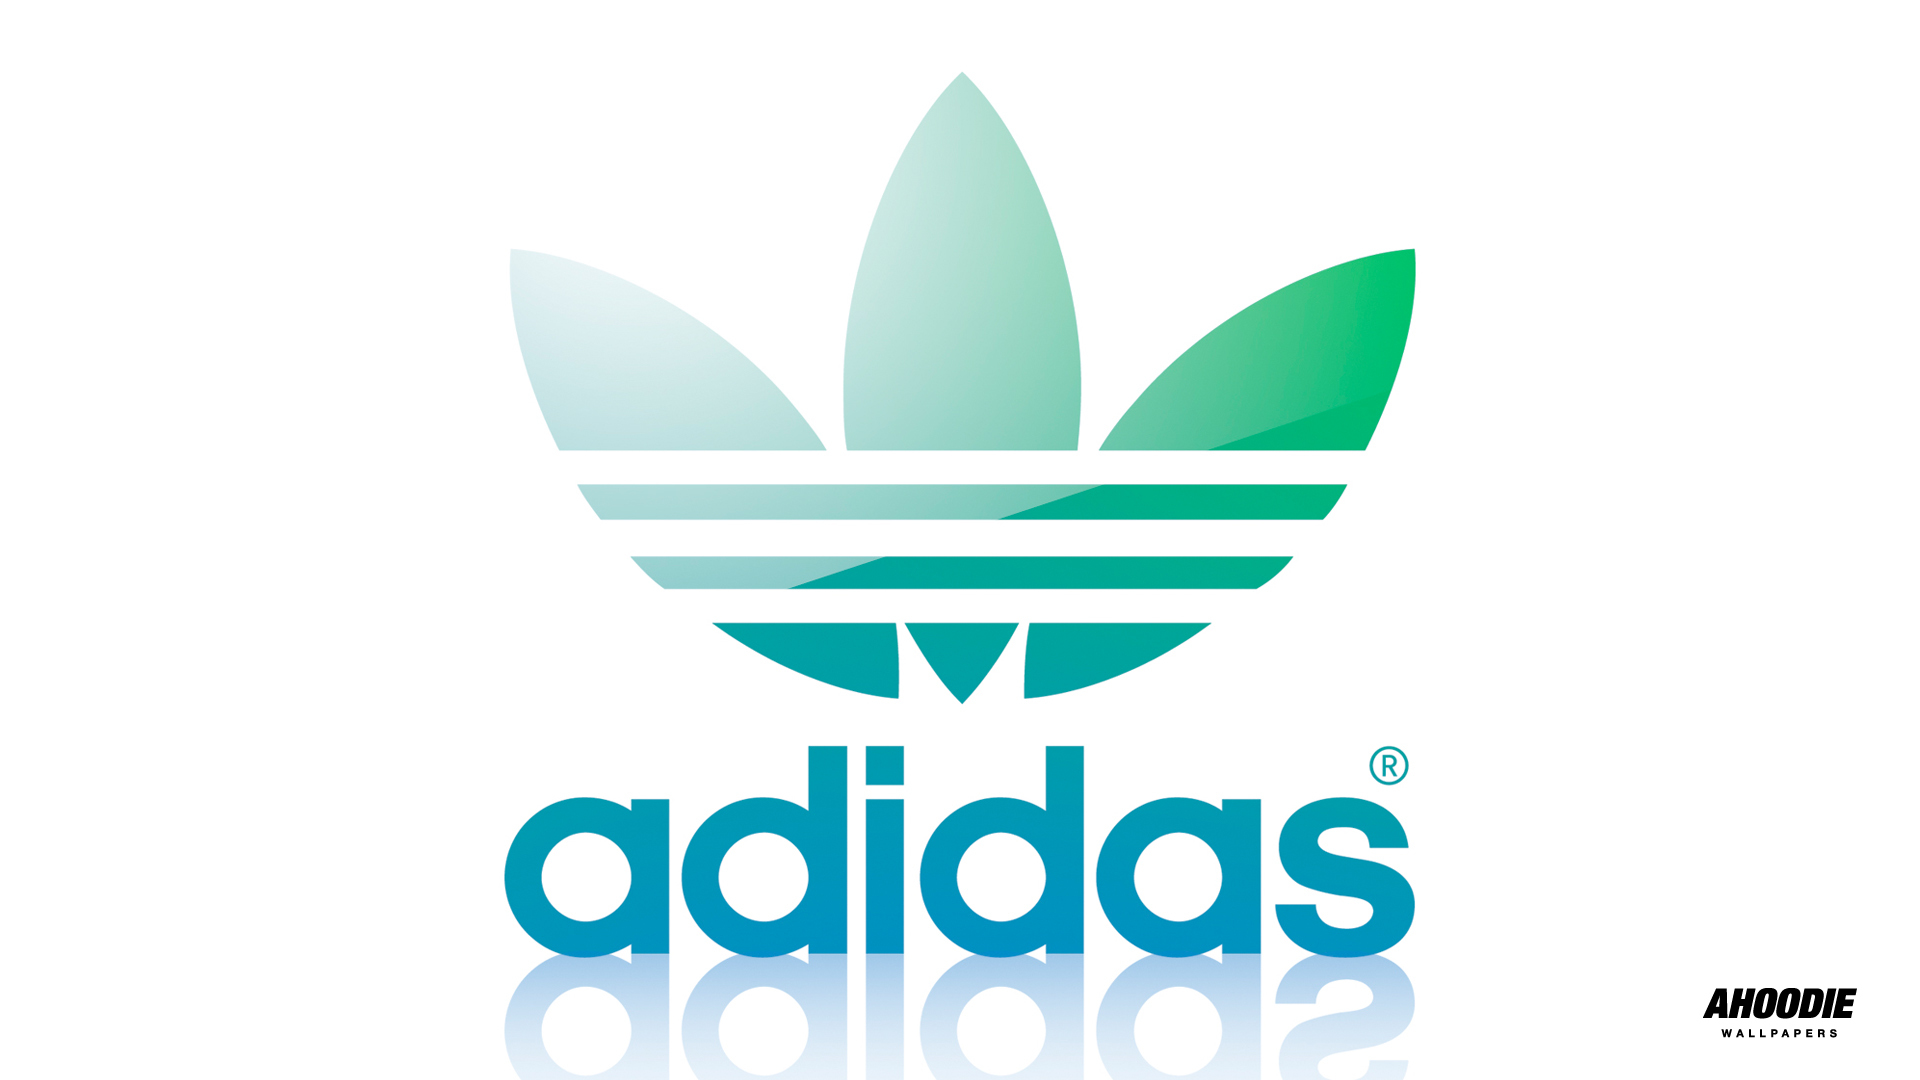 Adidas wallpapers images photos pictures backgrounds - Adidas wallpaper hd ...